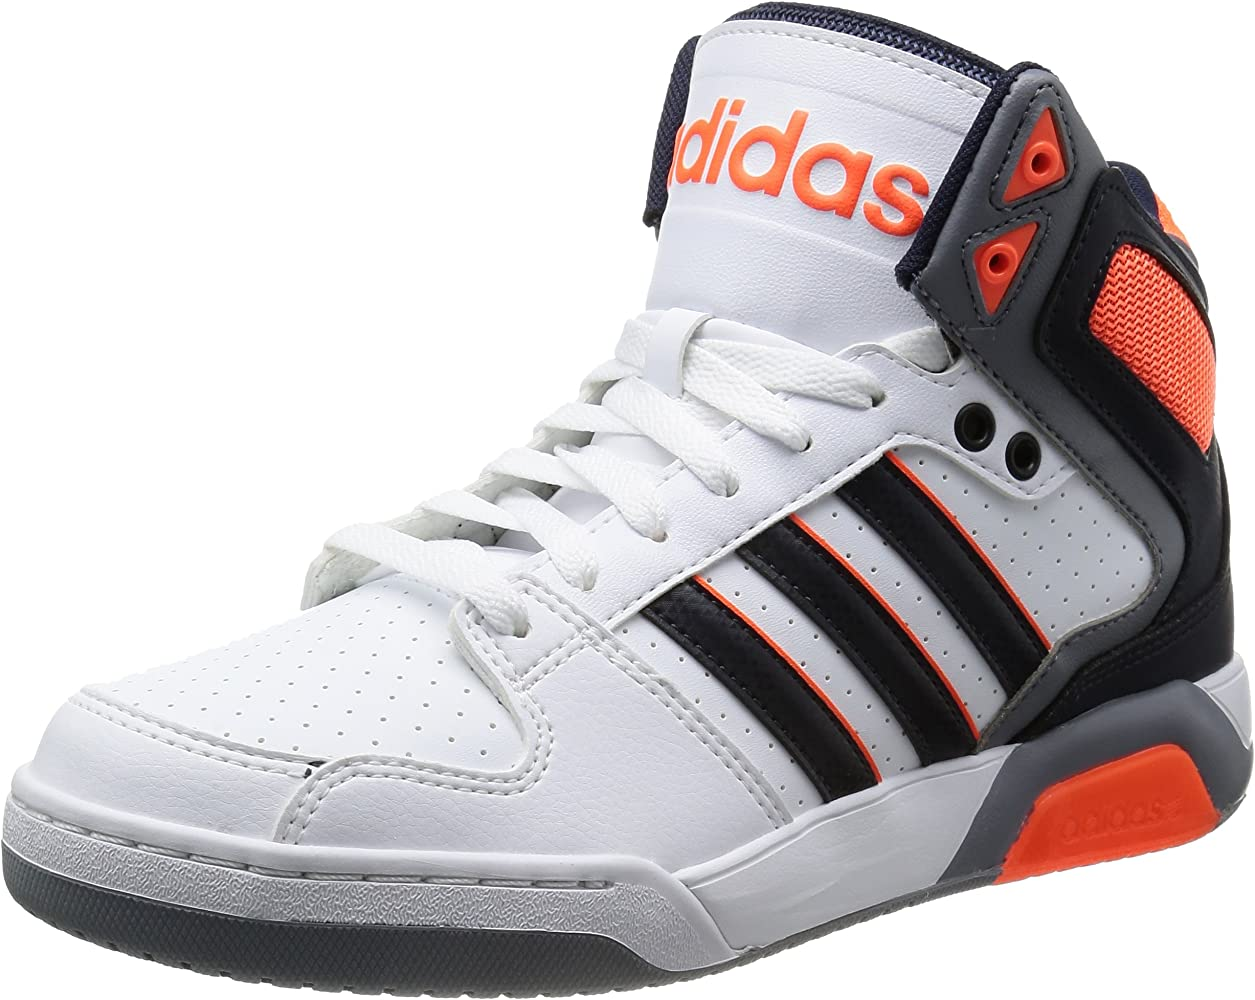 sneakers homme bb9tis neo chaussures blanc adidas mode xBeCod